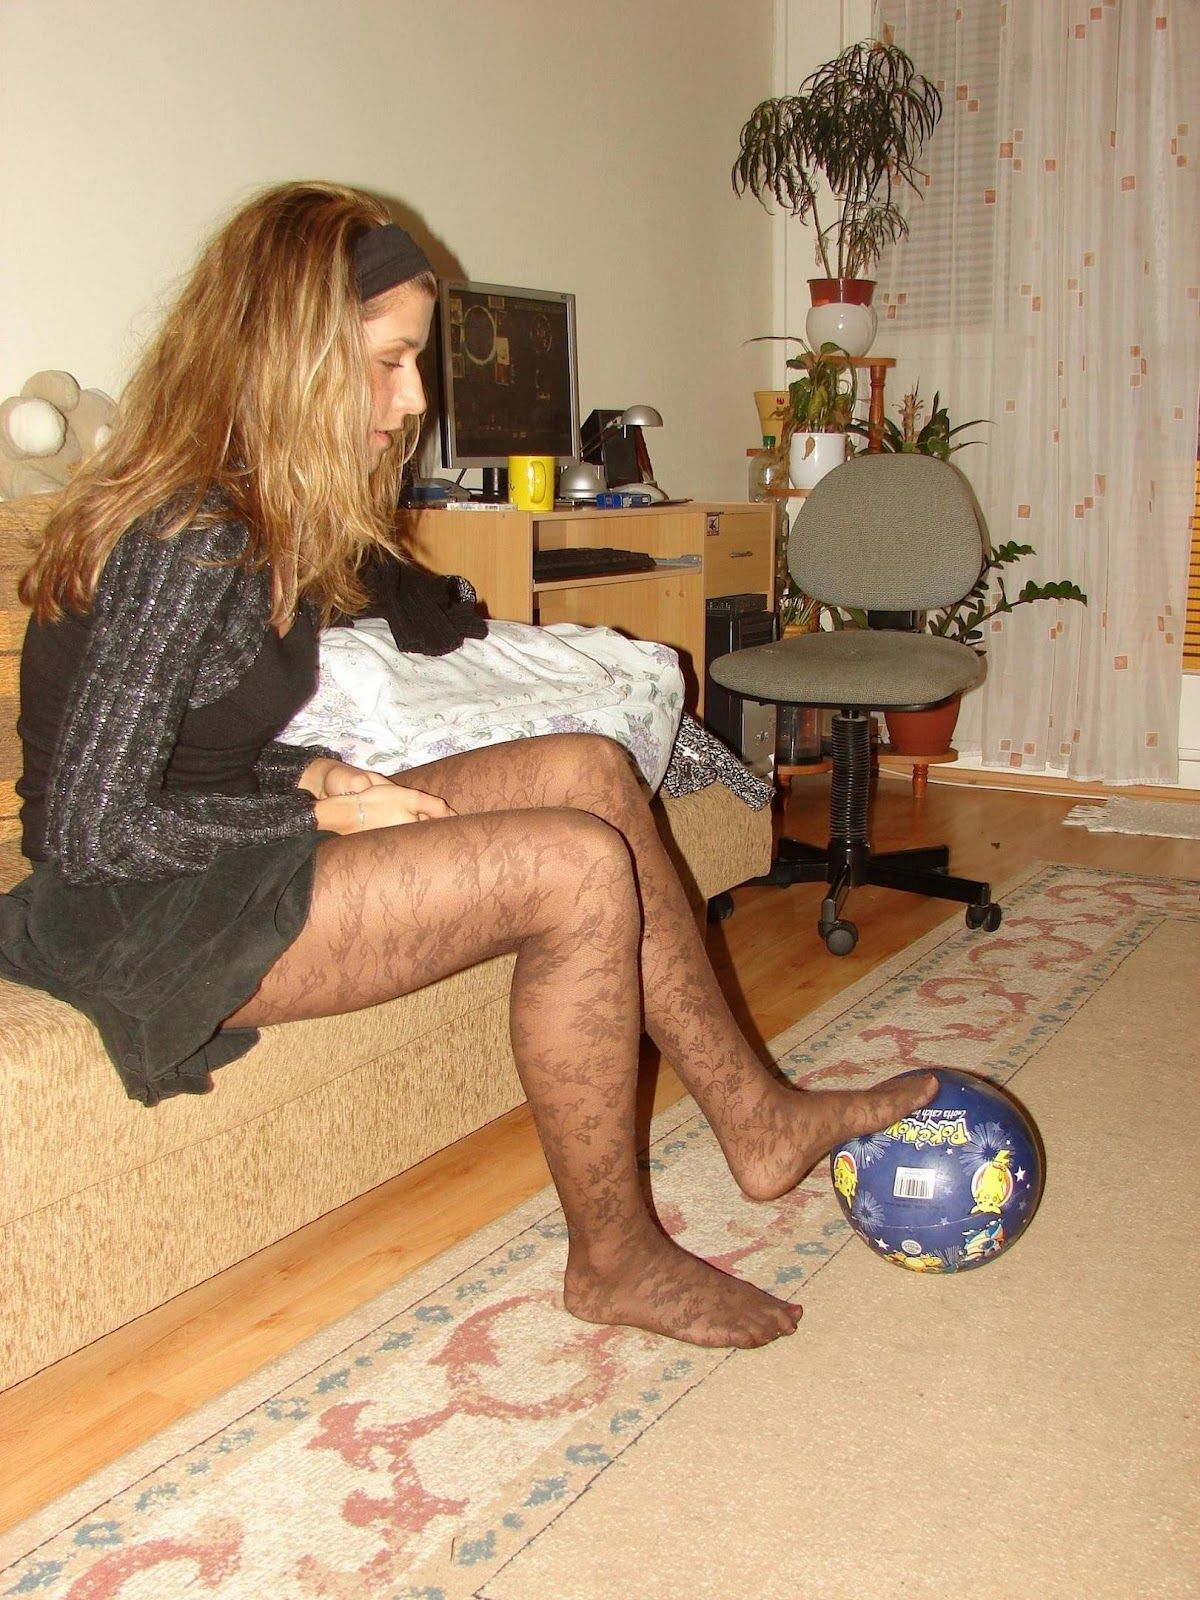 Apologise, but, Sexy amateur milf stockings excellent